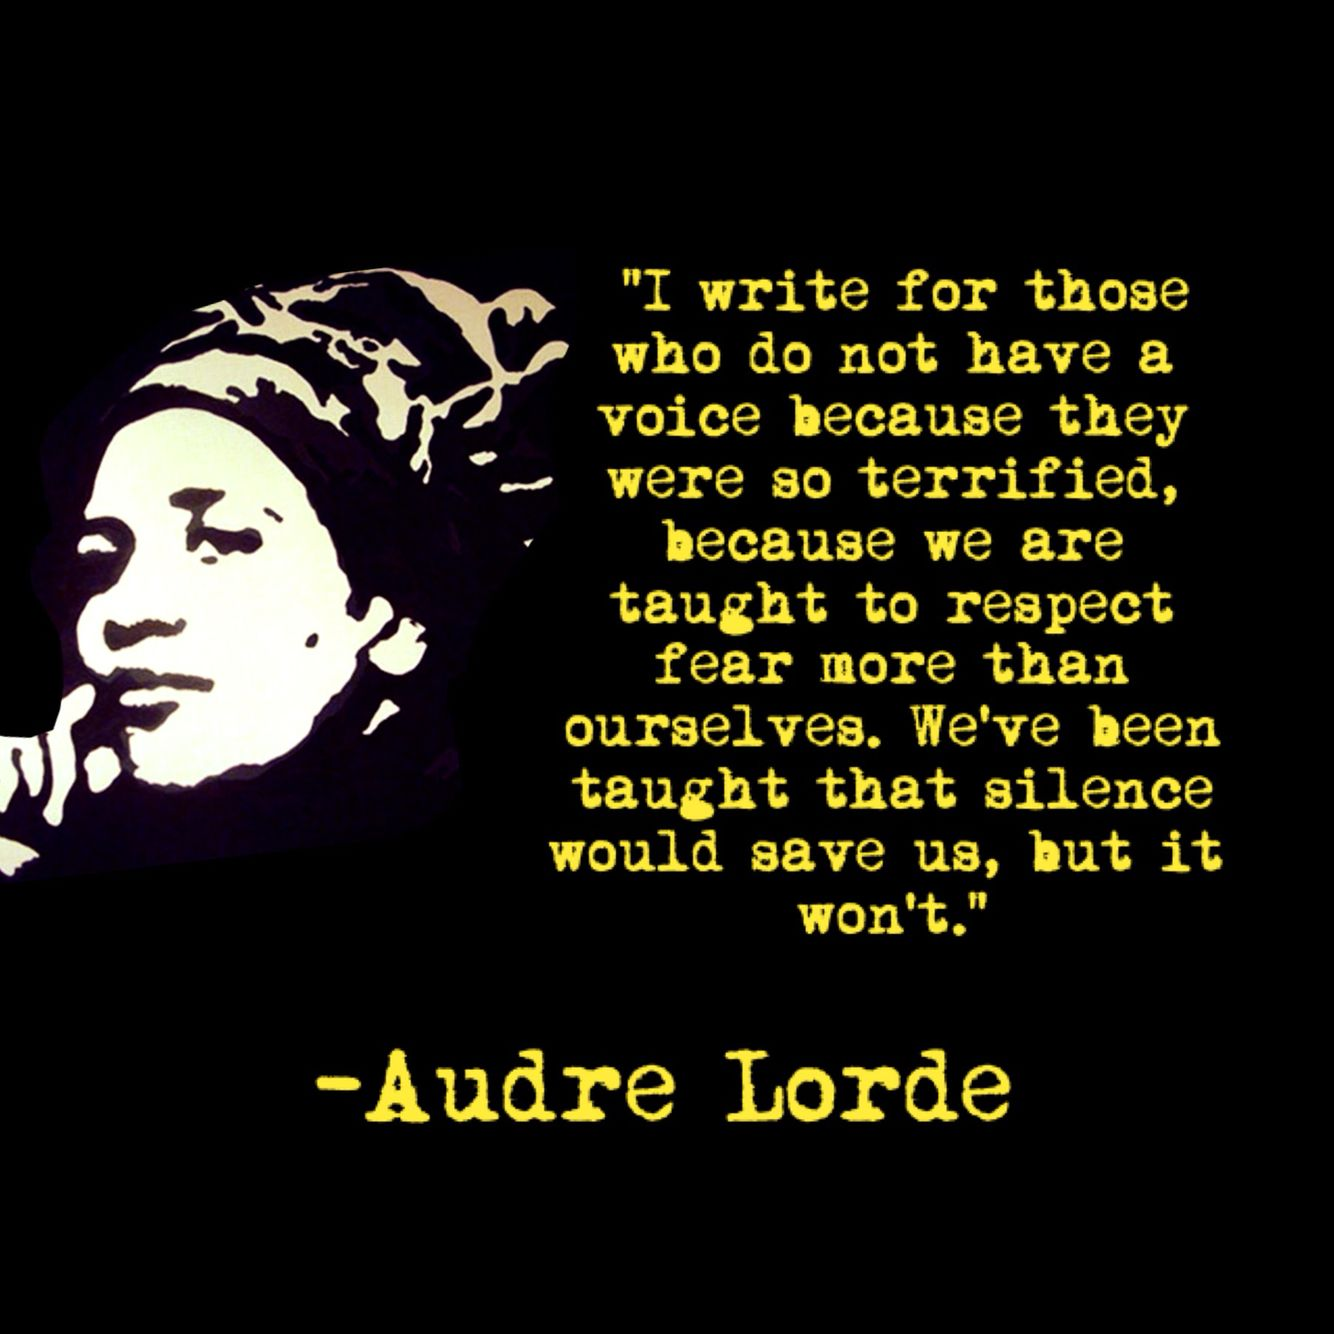 Audre Lorde Quotes Audre Lorde Quote on Women and Feminism | Women's Famous Quotes  Audre Lorde Quotes